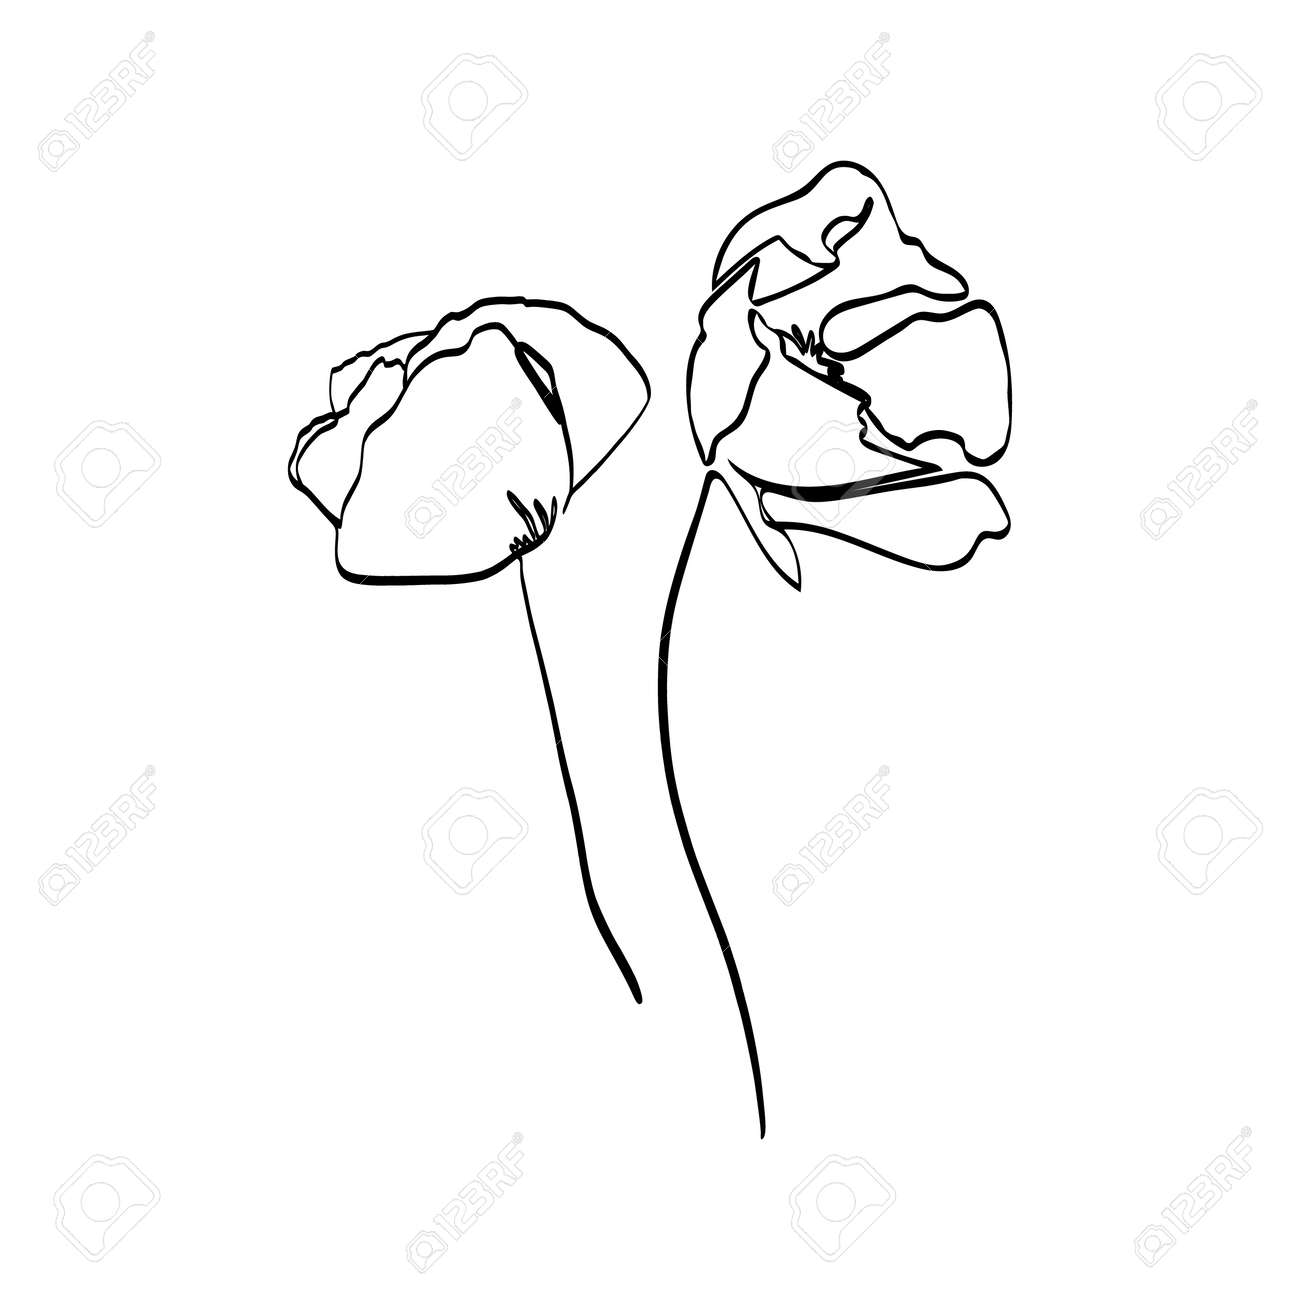 Poppy Flower Continuous Line Drawing Vector Abstract Plant In Royalty Free Cliparts Vectors And Stock Illustration Image 129788180